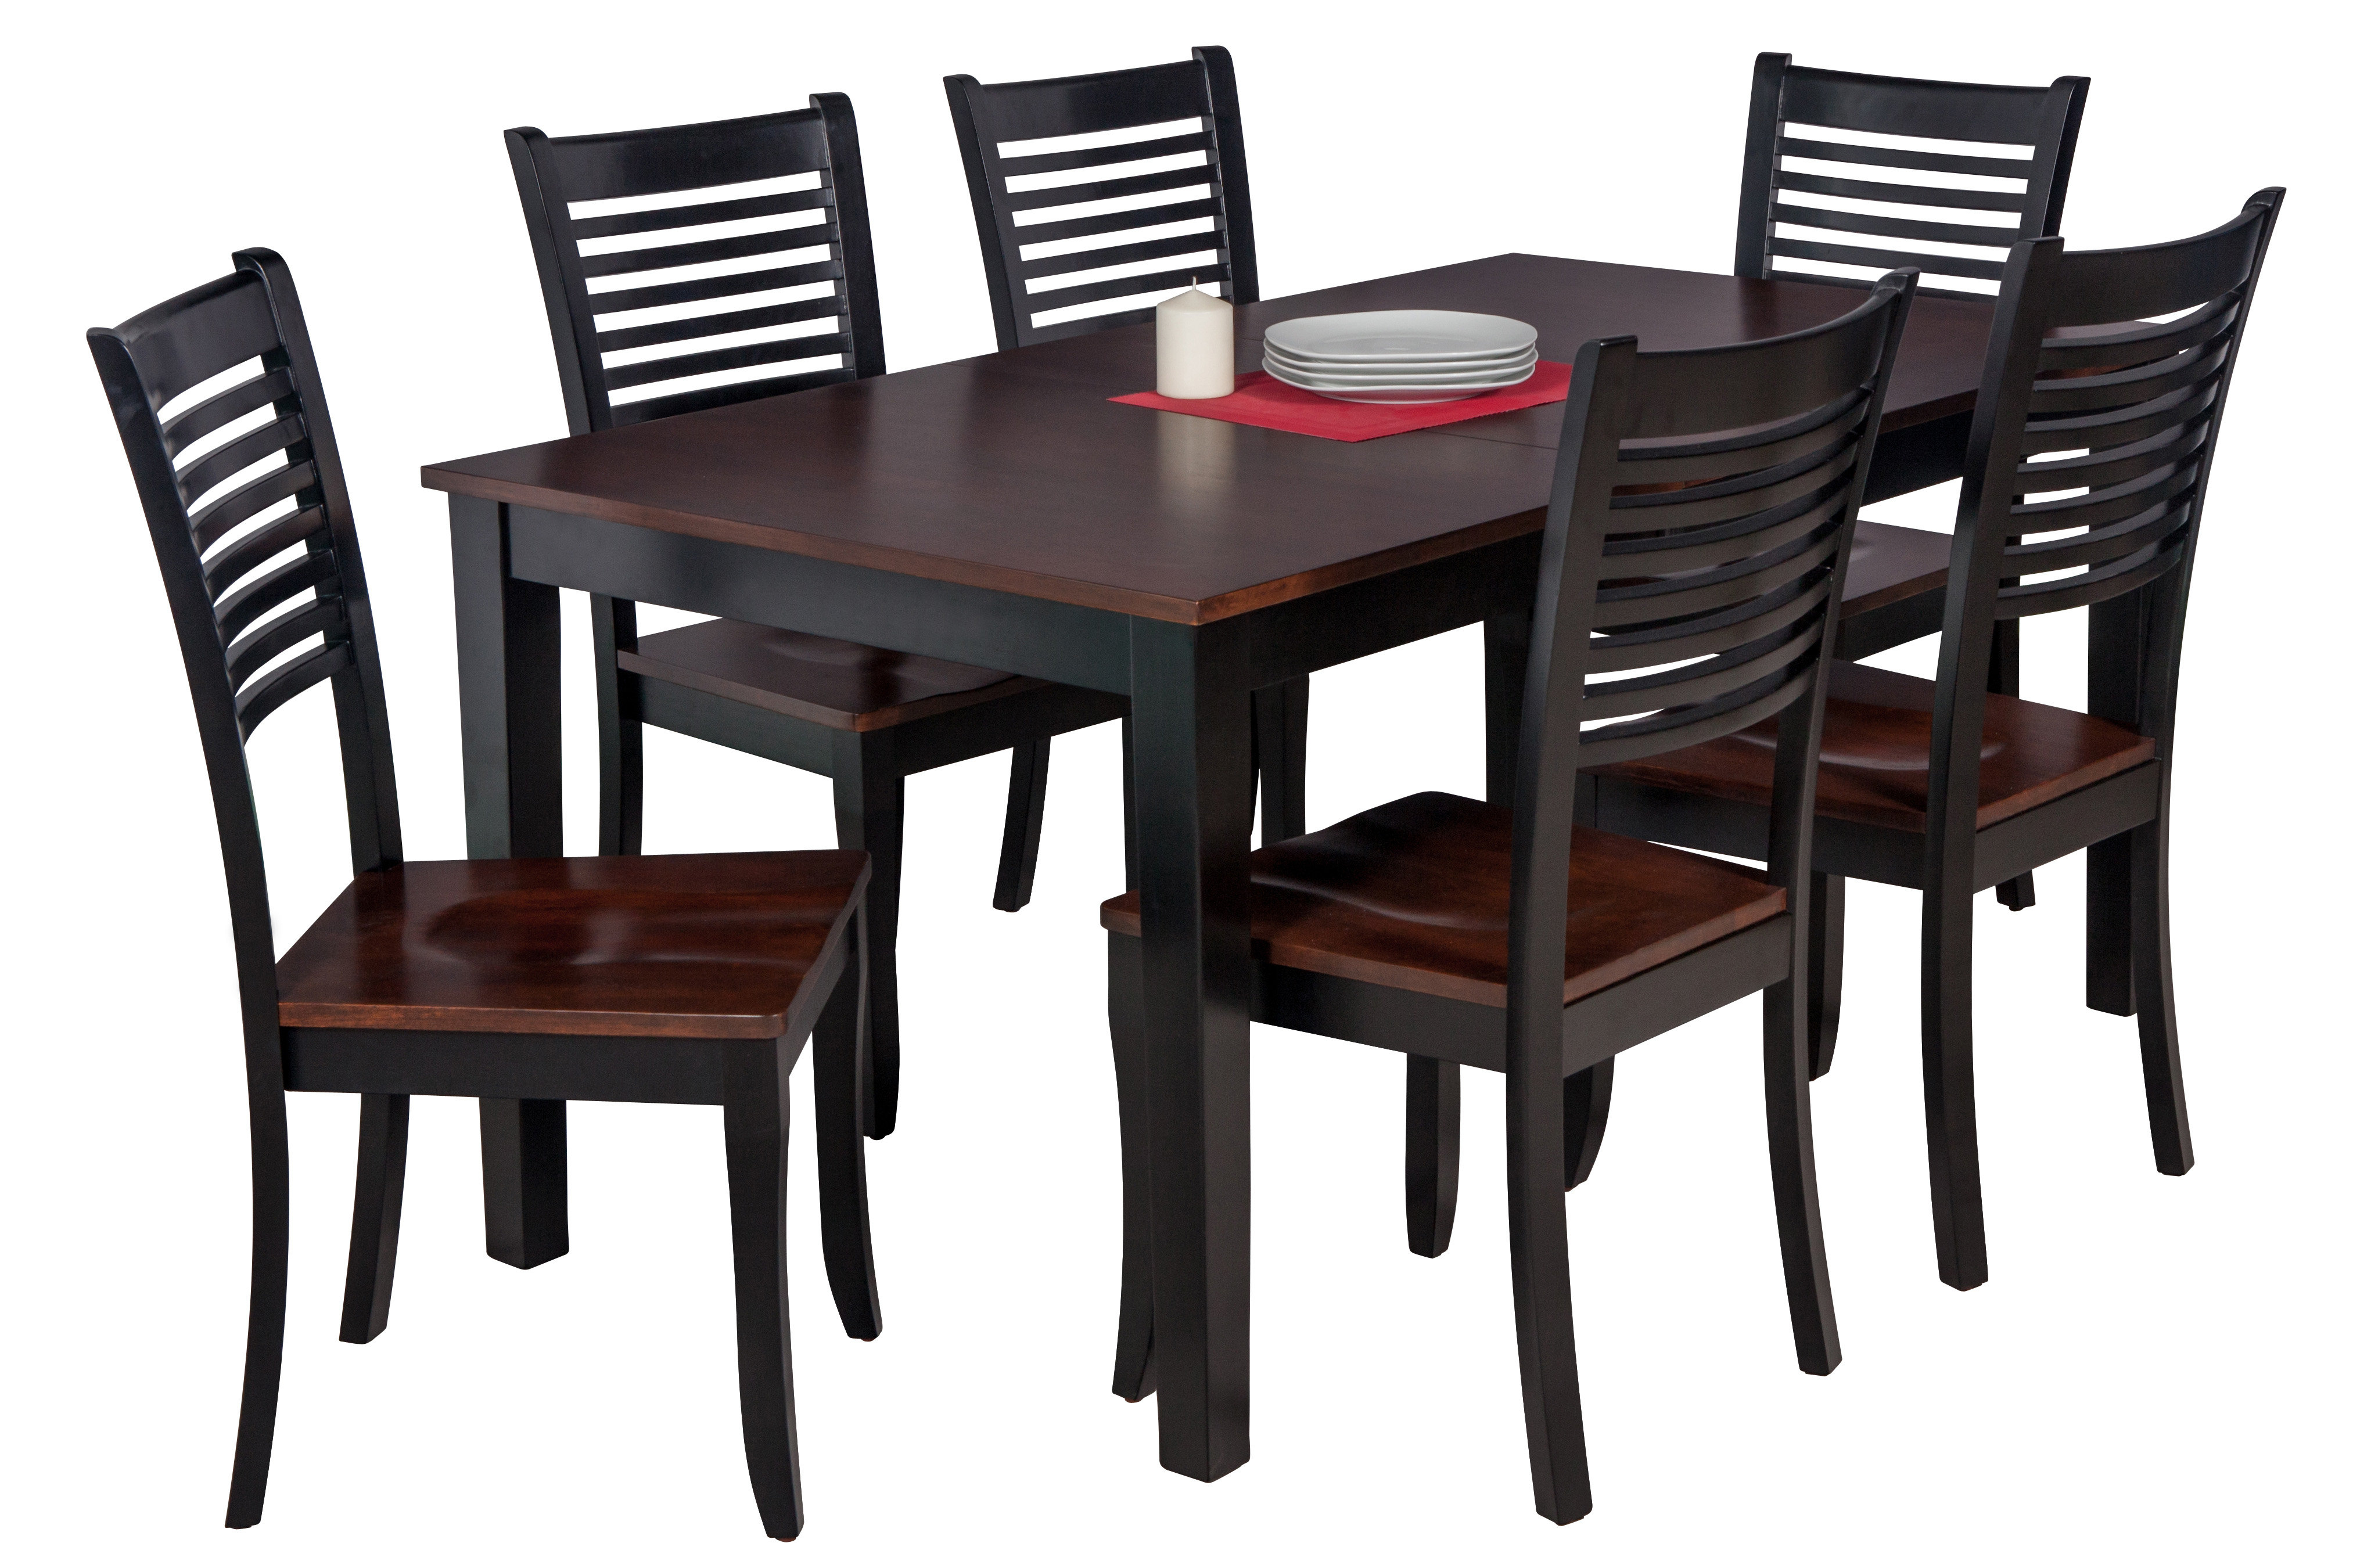 Downieville Lawson Dumont 7 Piece Solid Wood Dining Set Regarding Recent Hanska Wooden 5 Piece Counter Height Dining Table Sets (Set Of 5) (Image 7 of 20)